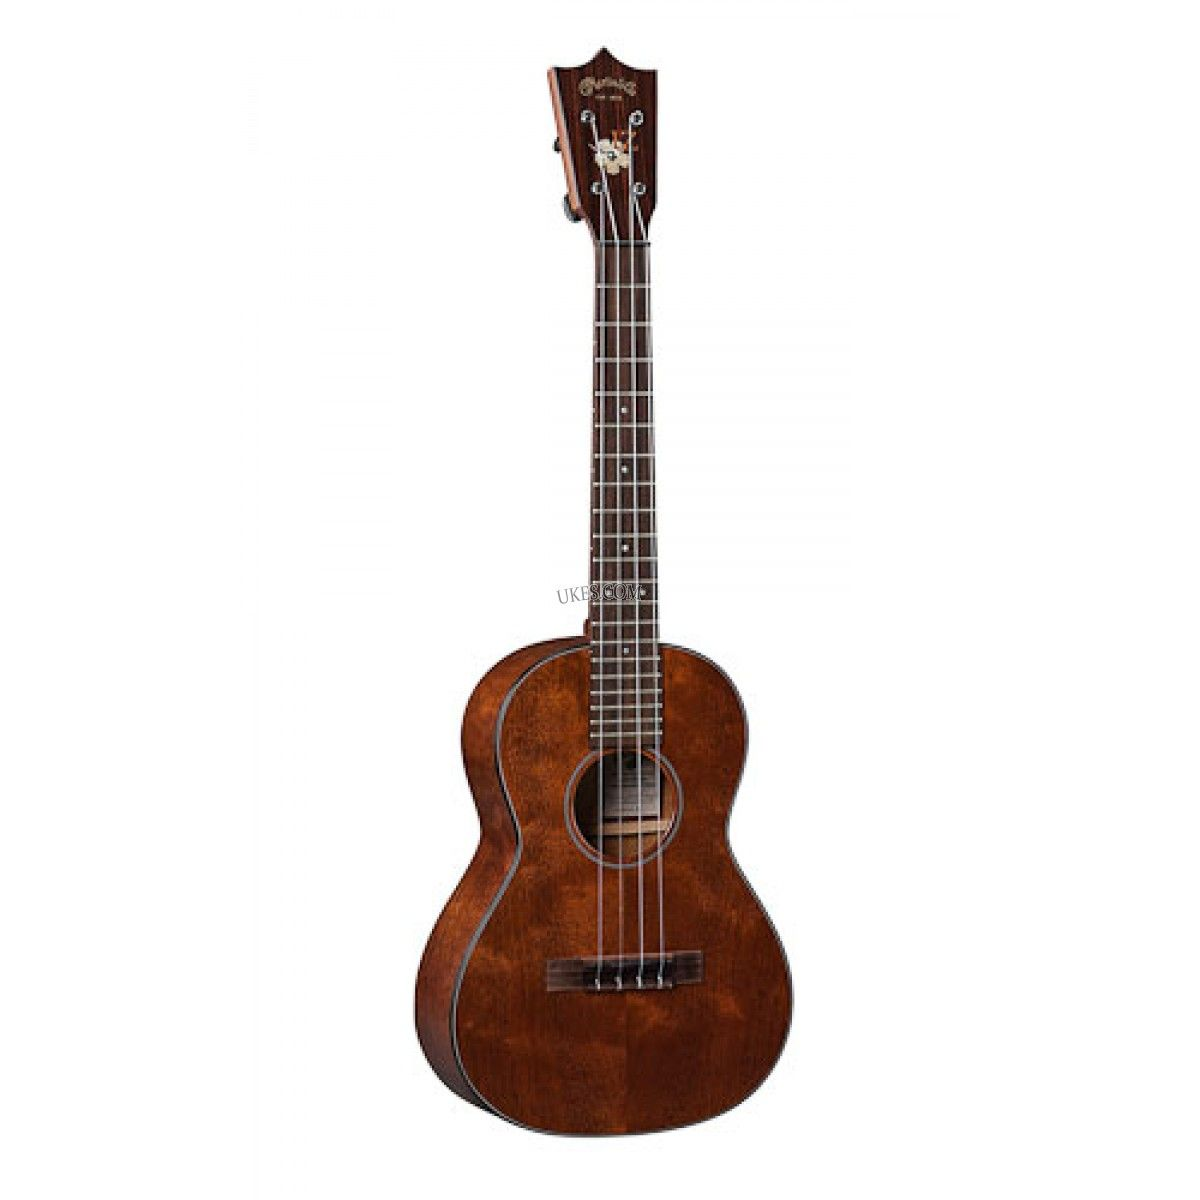 "Martin 1T-IZ Tenor Ukulele. A tribute to legendary artist Israel Kamakawiwo'ole (""Iz""), this tenor ukulele features beautiful quilted mahogany. www.Ukes.com #maui #hawaii #uke #ukelele"